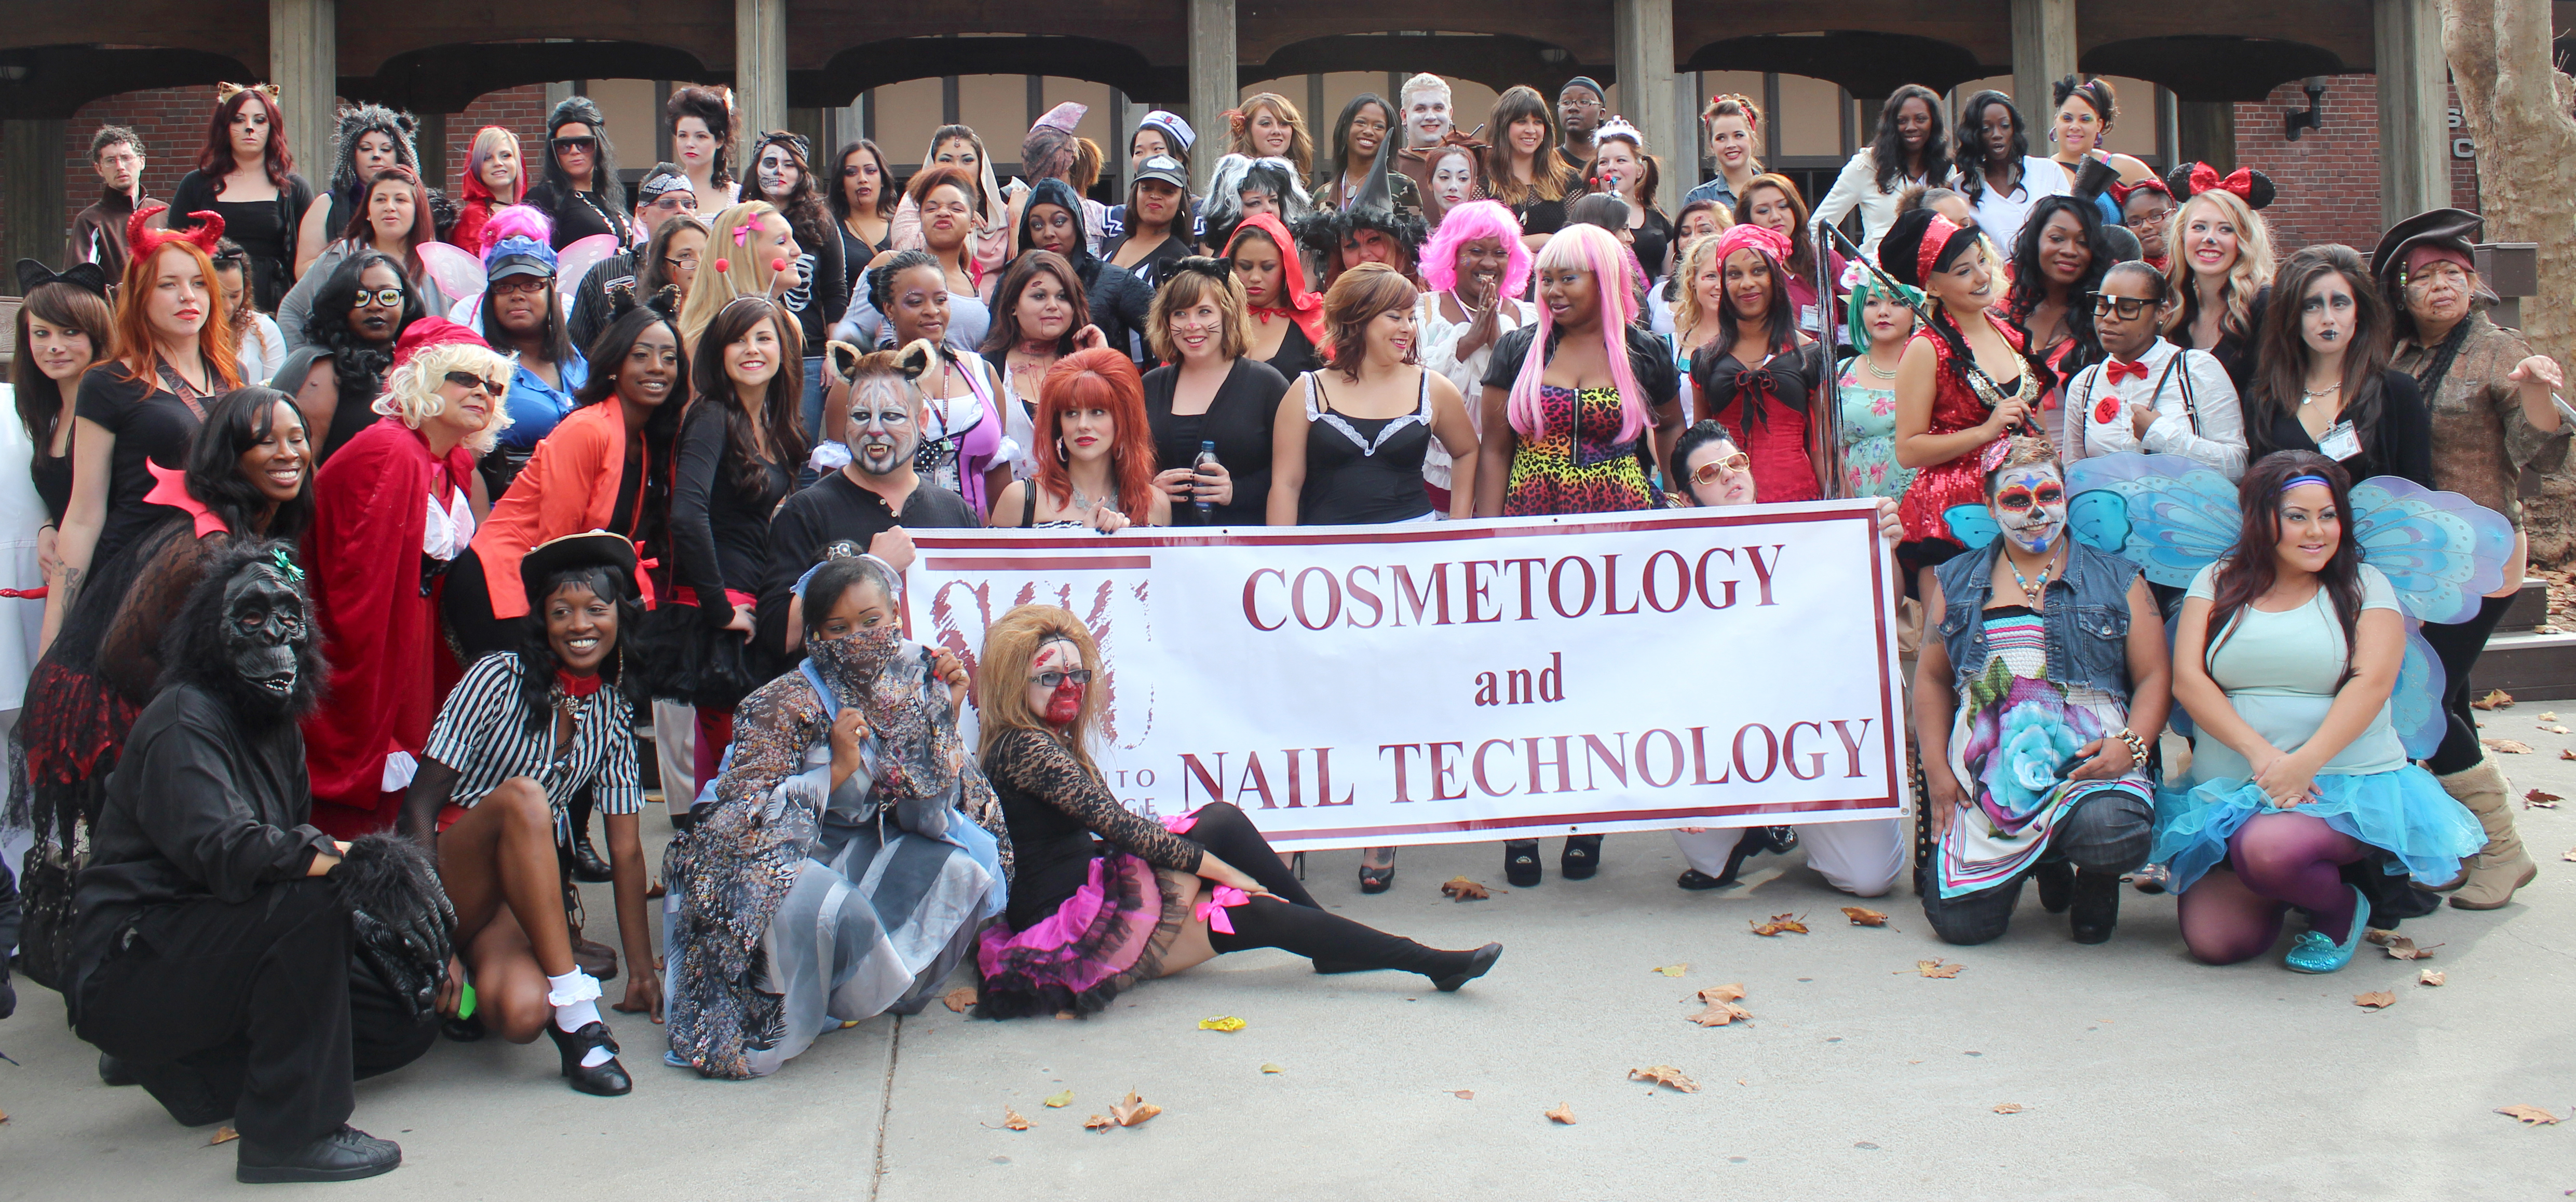 Cosmopolitan students dressed up and through a parade  at City College in celebration of Halloween. Jessica Rine | jessicarineexpress@gmail.com